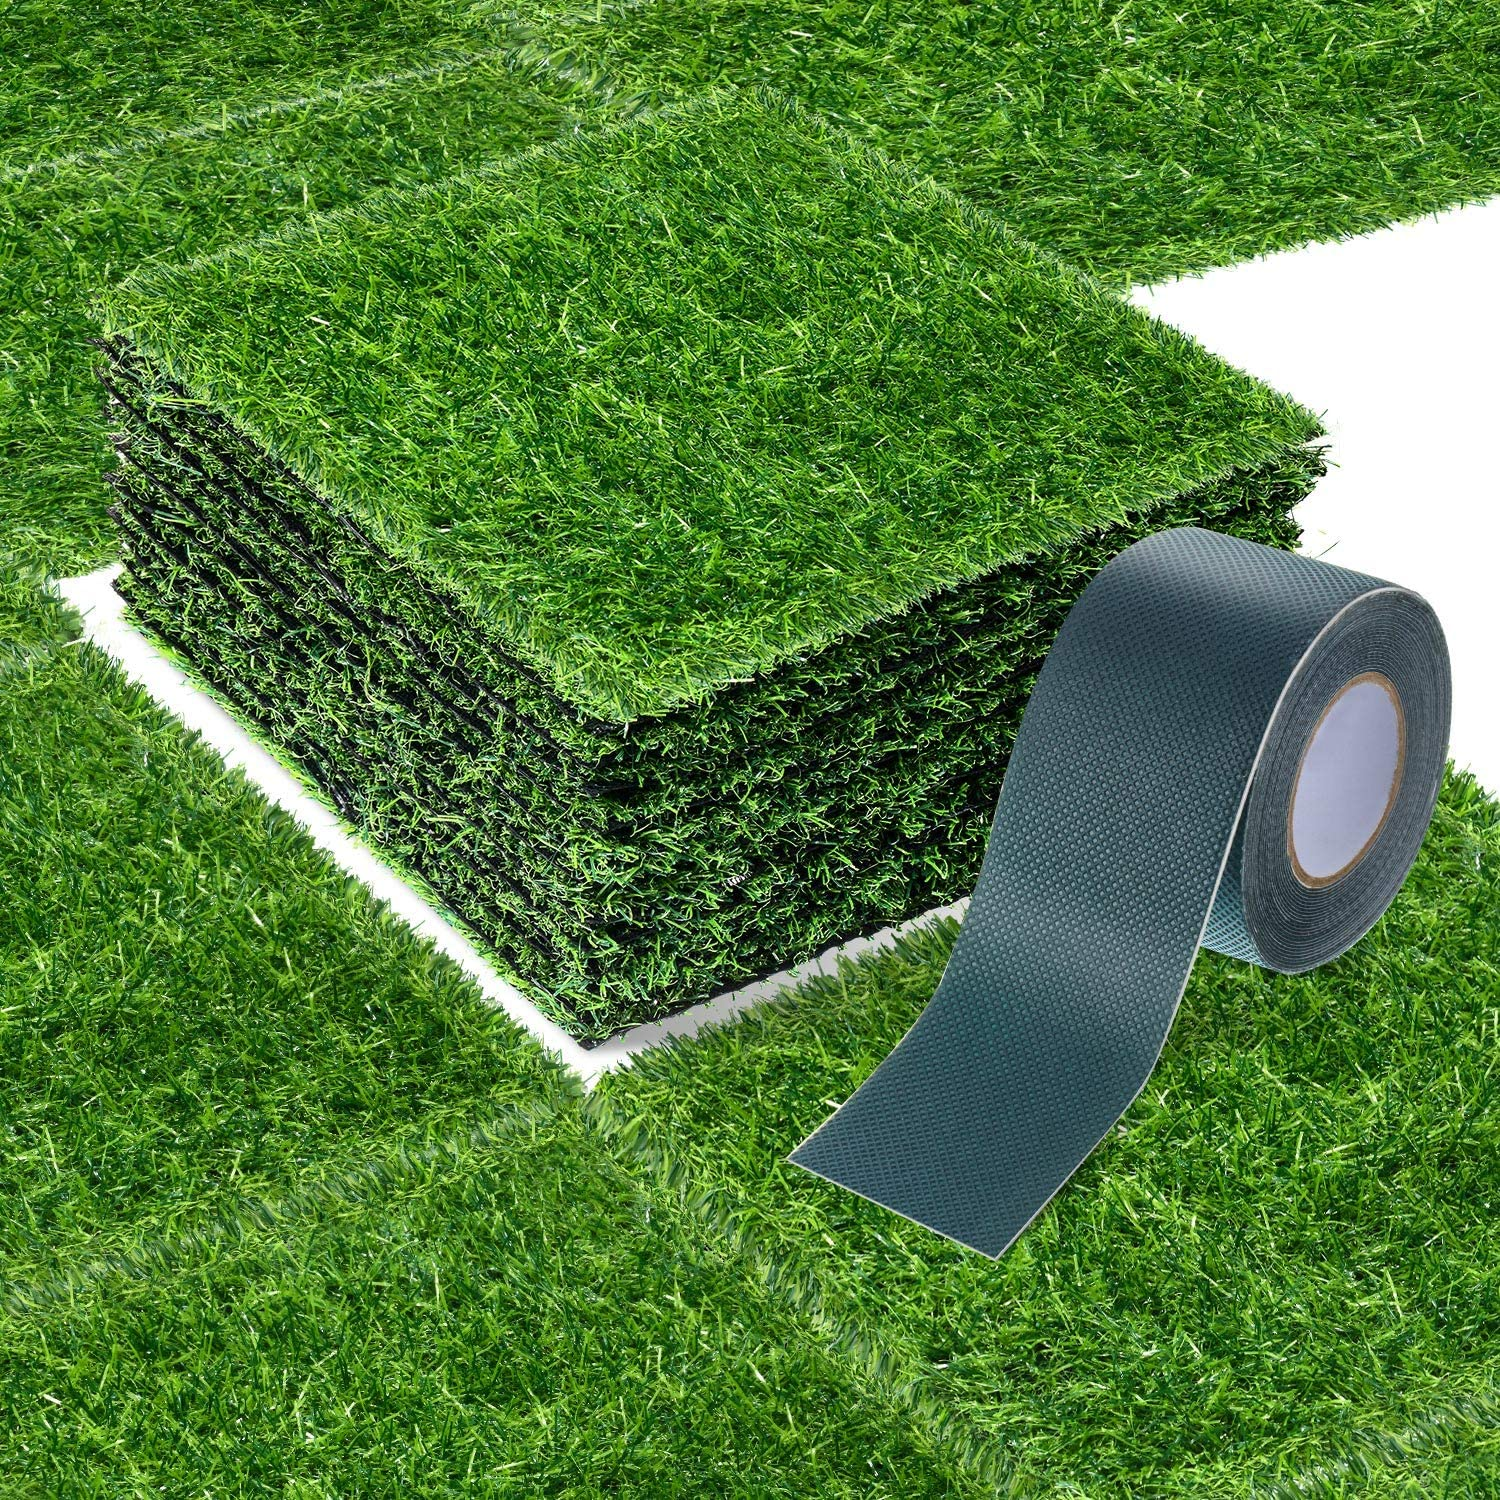 12 X 12 Inch Fake Grass Artificial Grass Mat Fairy Grass Synthetic Garden Artificial Turf Rug For Dogs With Tape For Indoor And Outdoor Use 12 Pieces Amazon Co Uk Kitchen Home